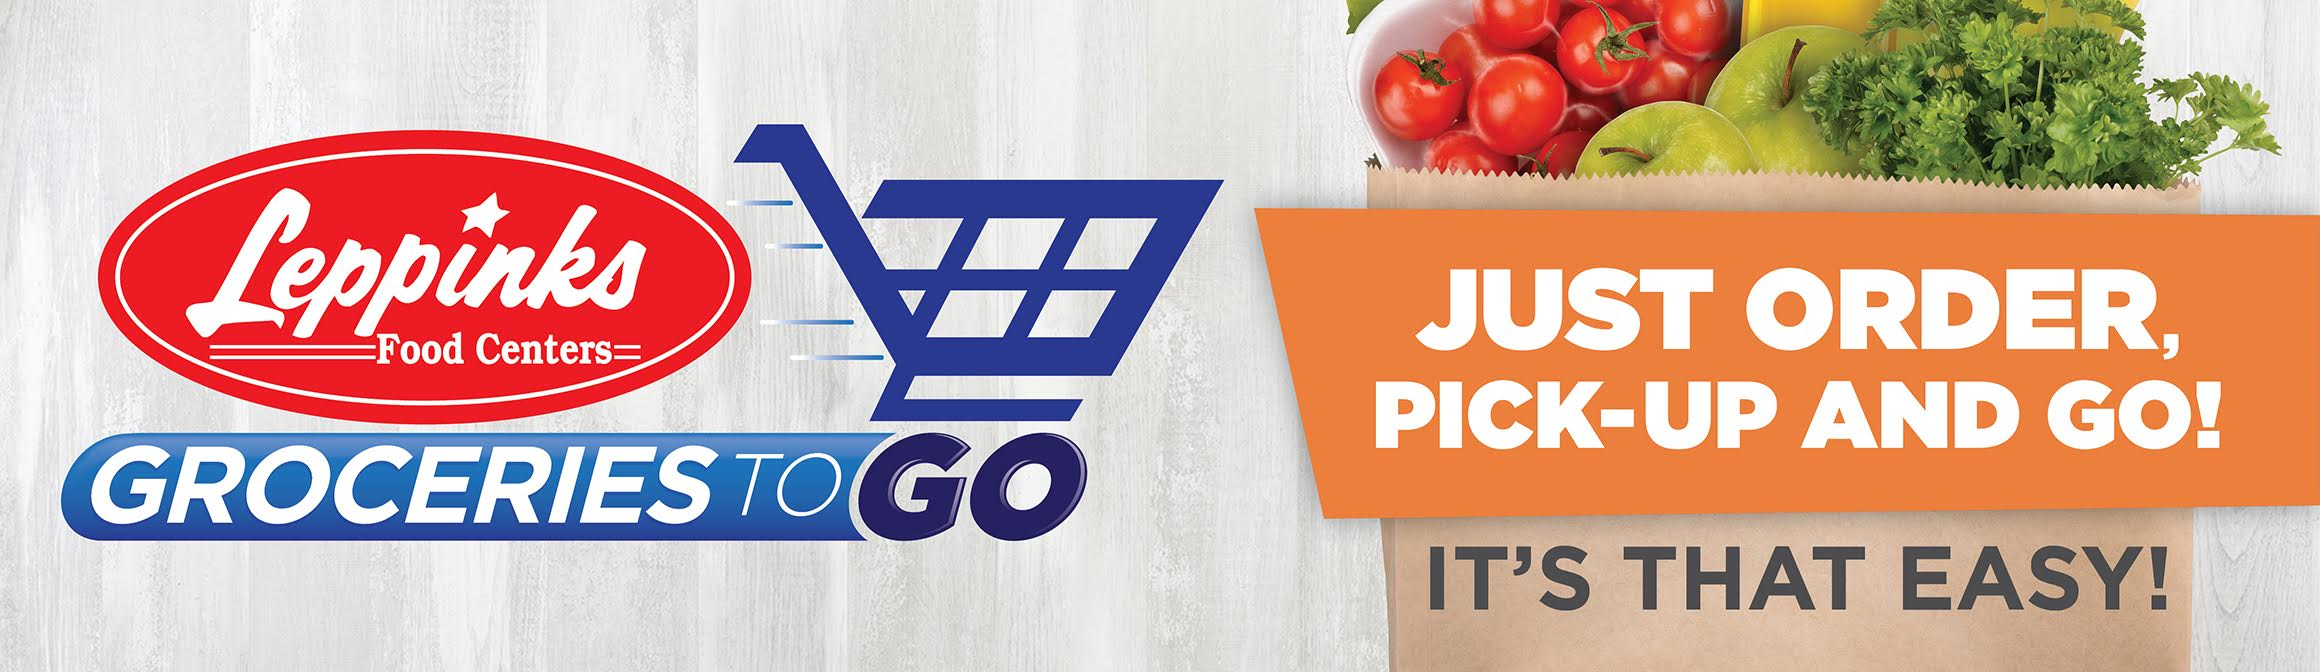 Leppinks Food Centers Groceries To Go. Just order, pick-up and go. It's that easy!